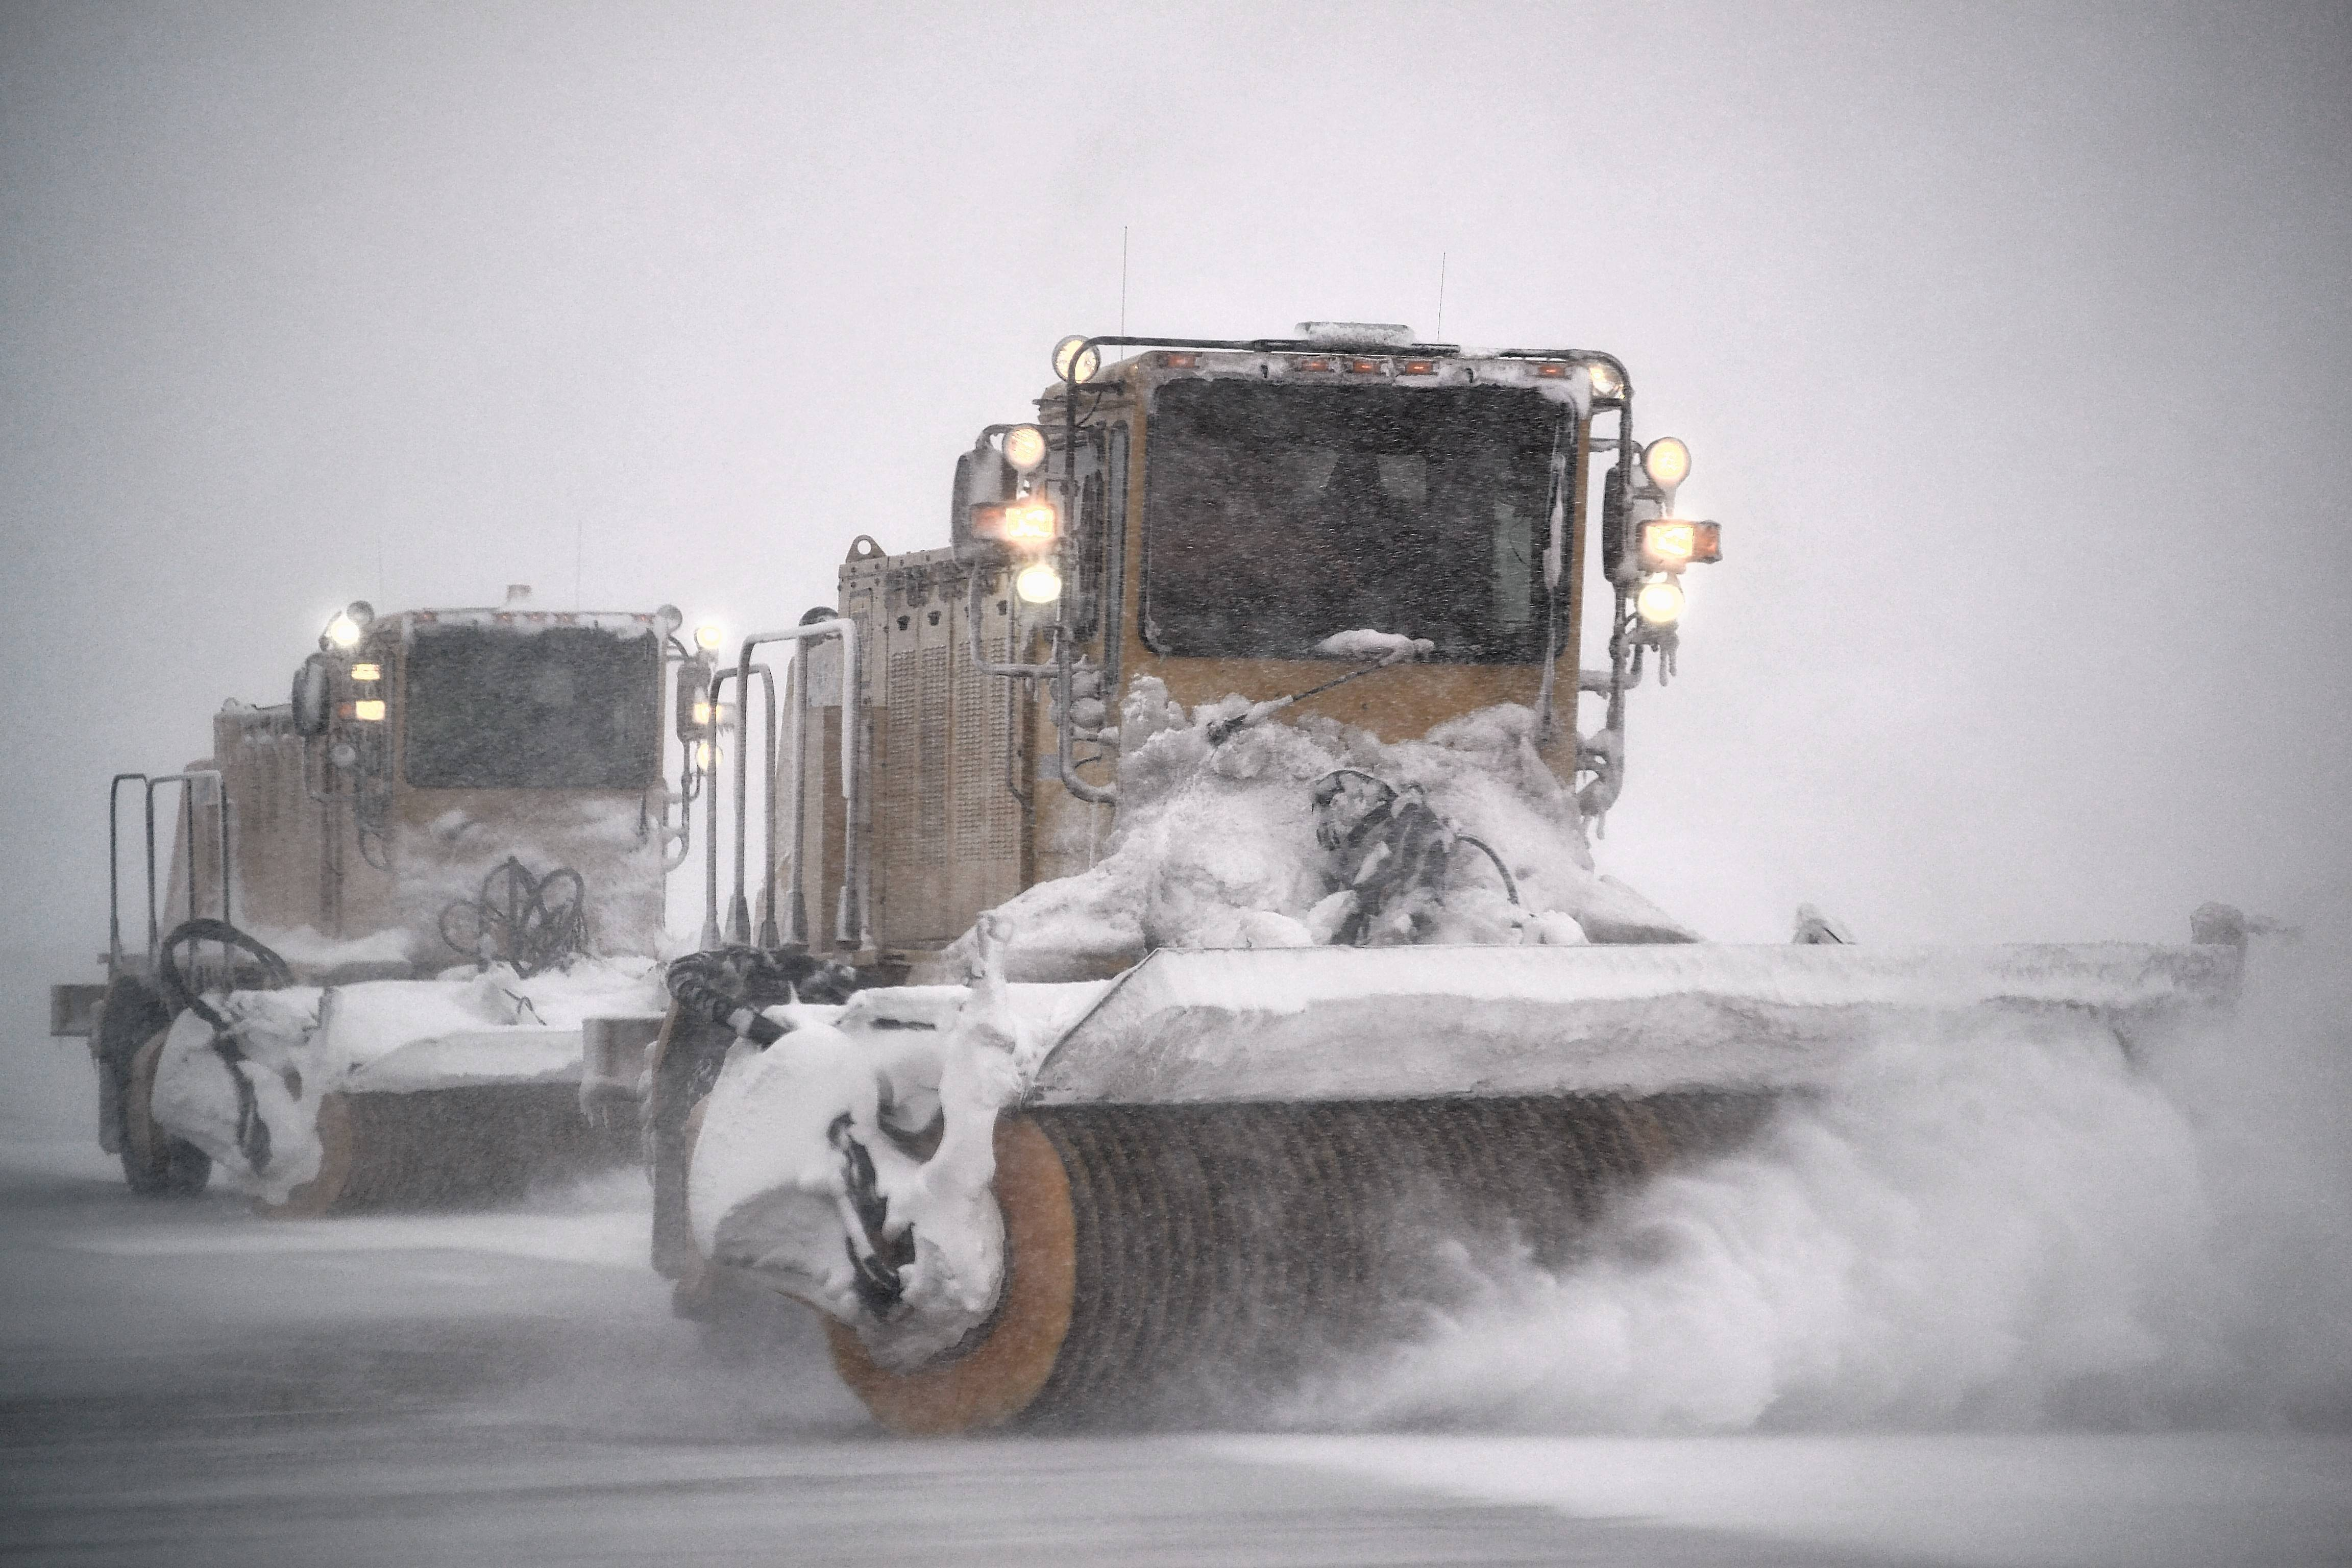 Snowplow drivers removed nearly 5,000 dump truck loads of snow from Chicago Executive Airport during a storm in February, officials estimated.